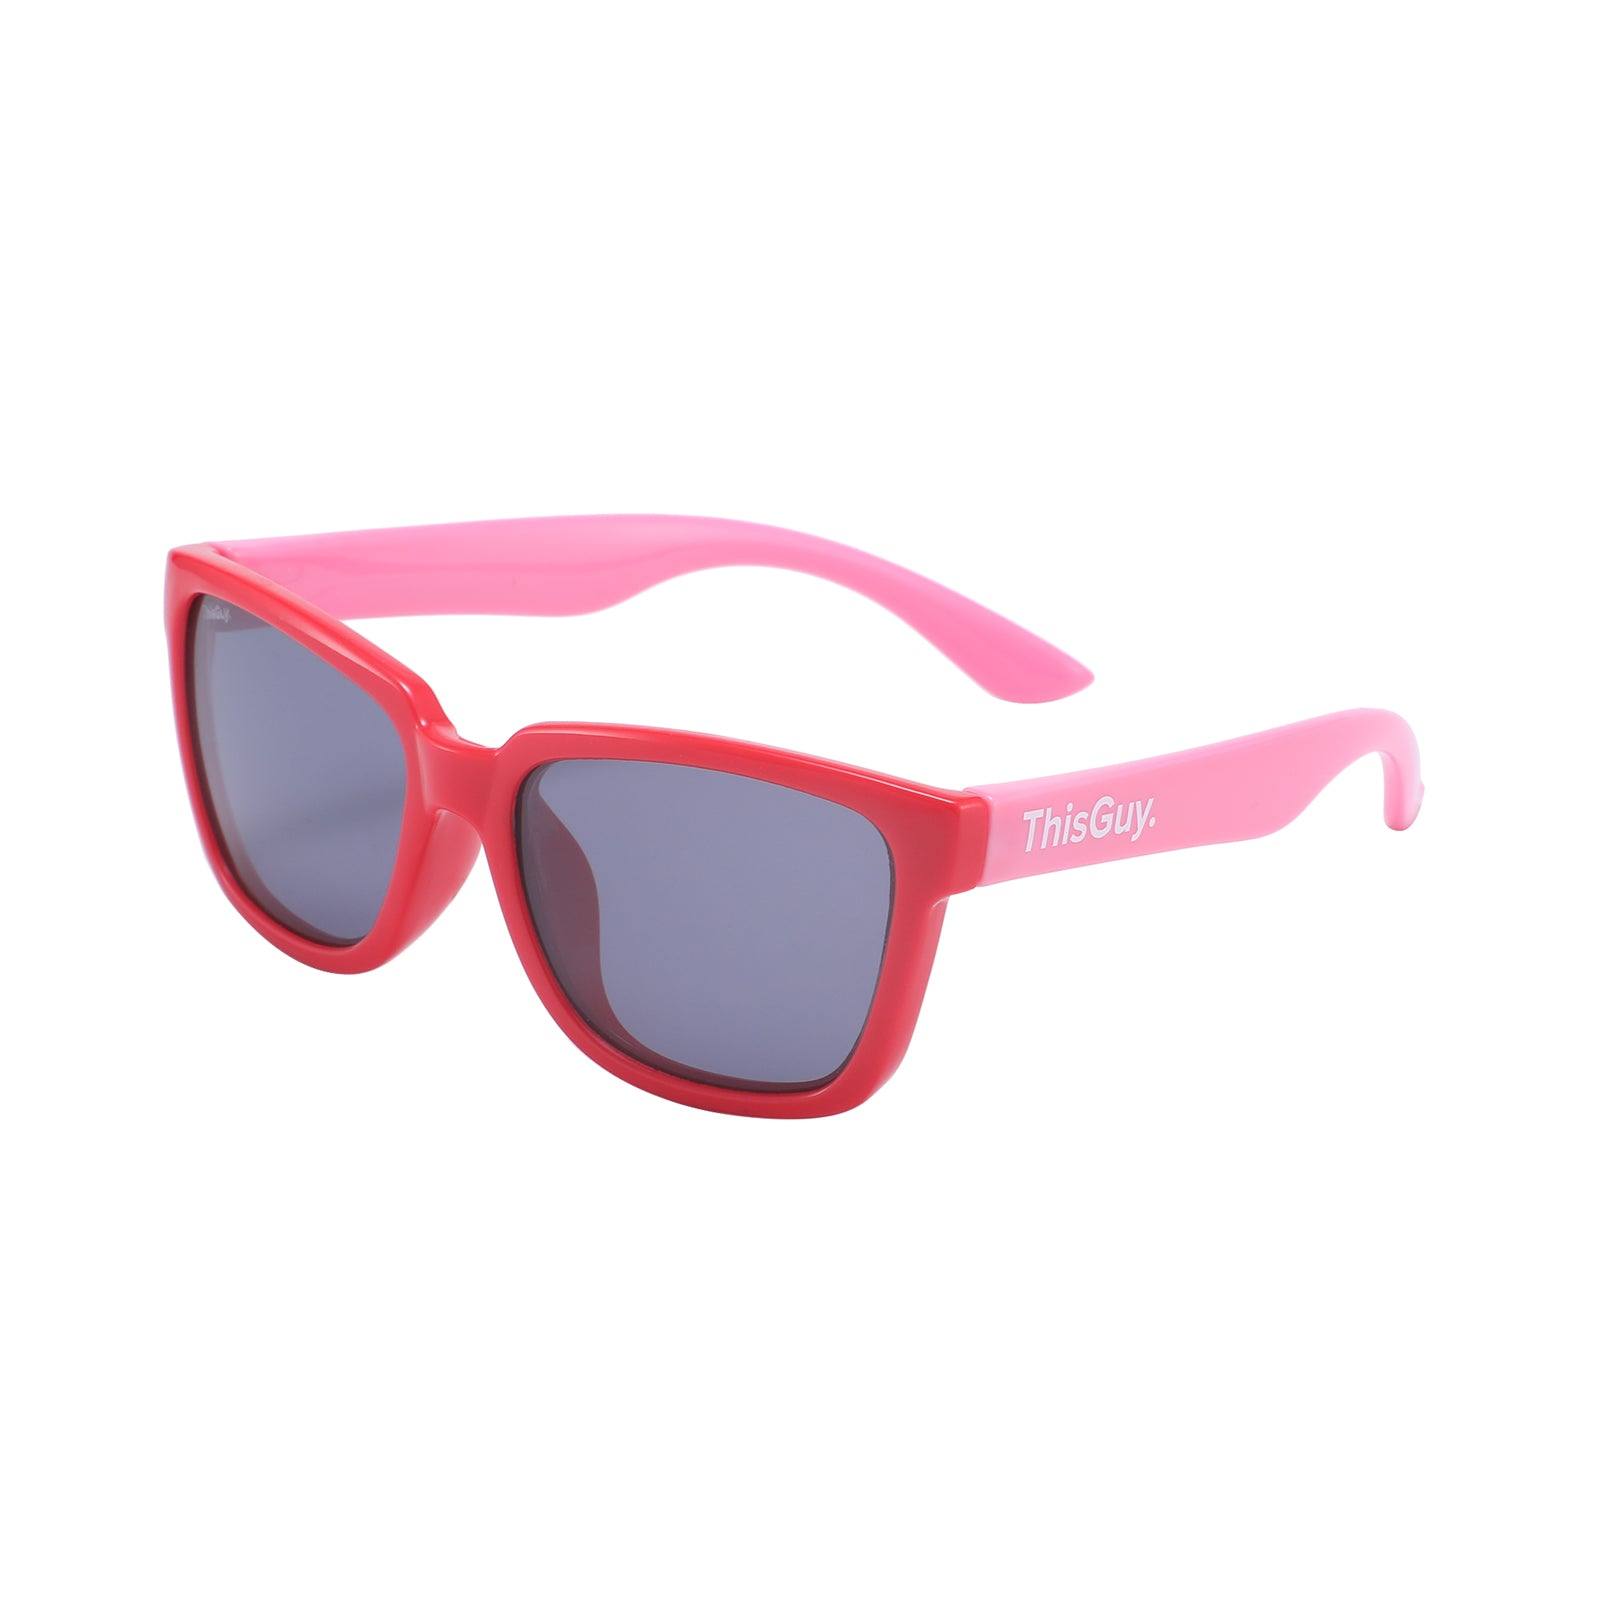 ThisGuy Kids Sunglasses - Ruby Red and Pink Wayfarers